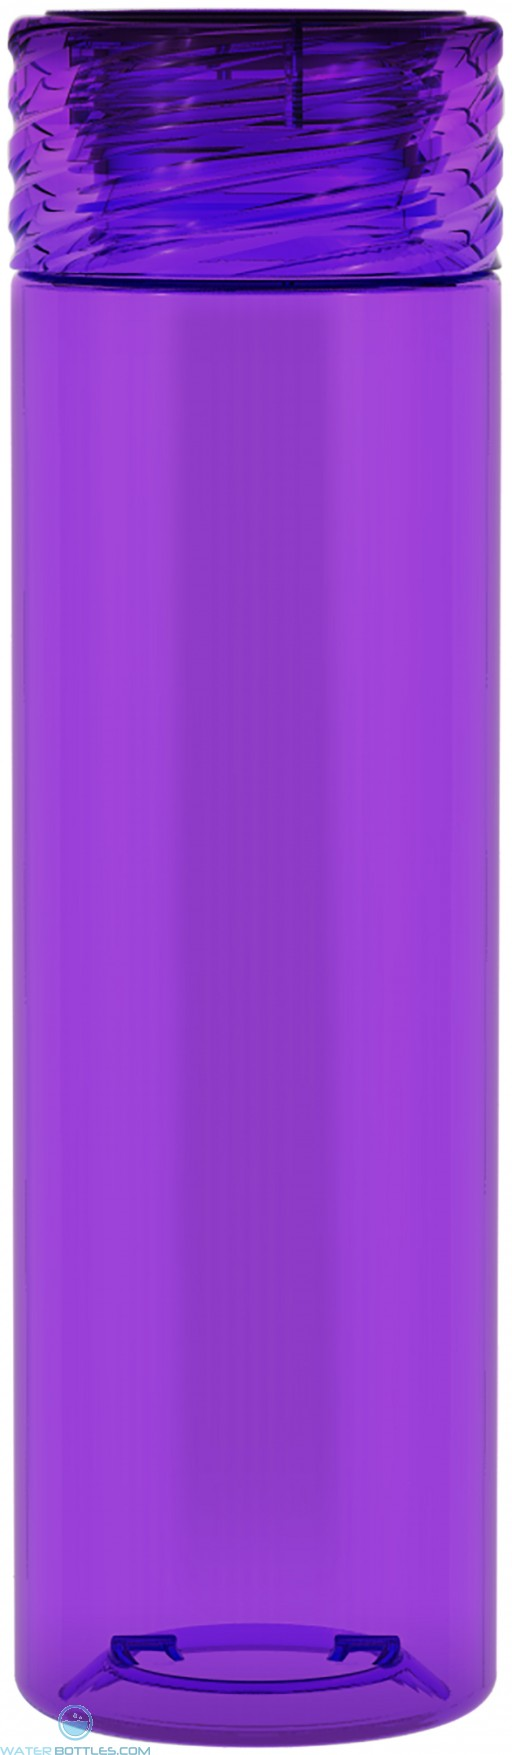 32 oz H2Go Tornado Bottle_Purple_Blank